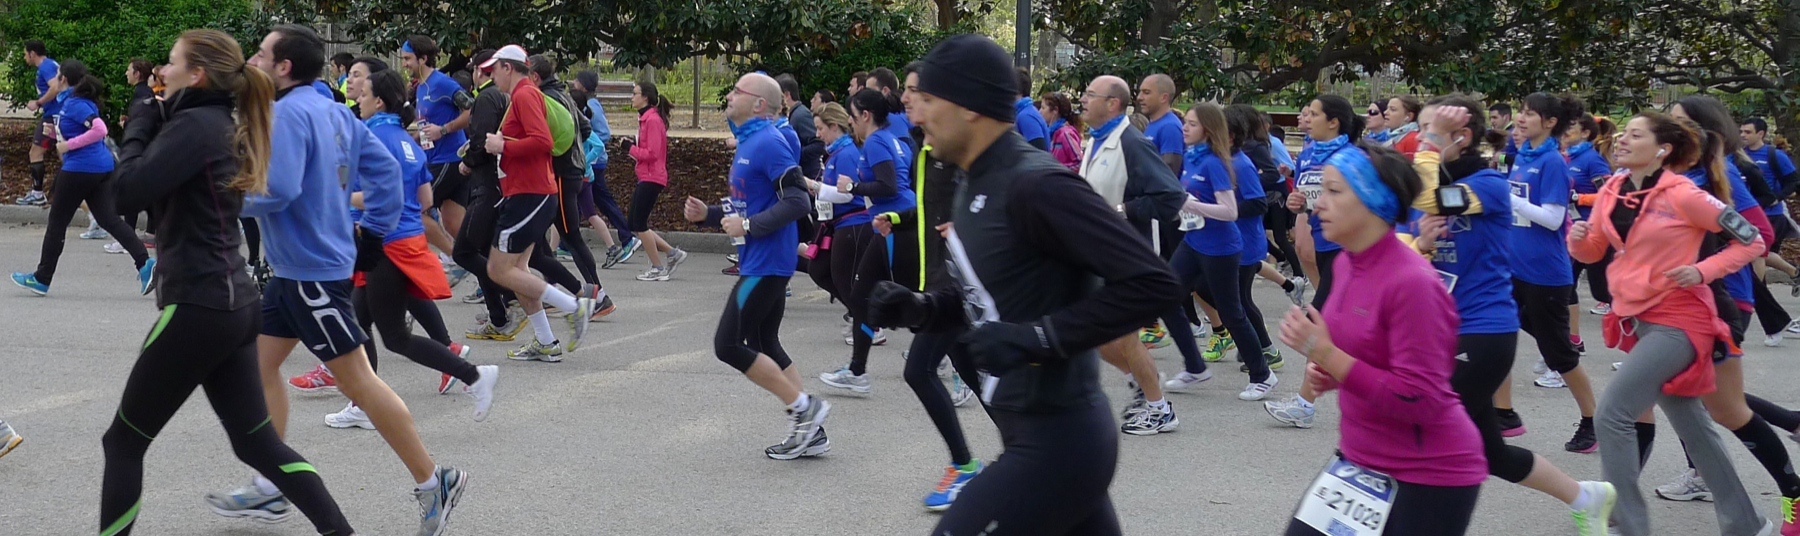 AI healthcare runners.png